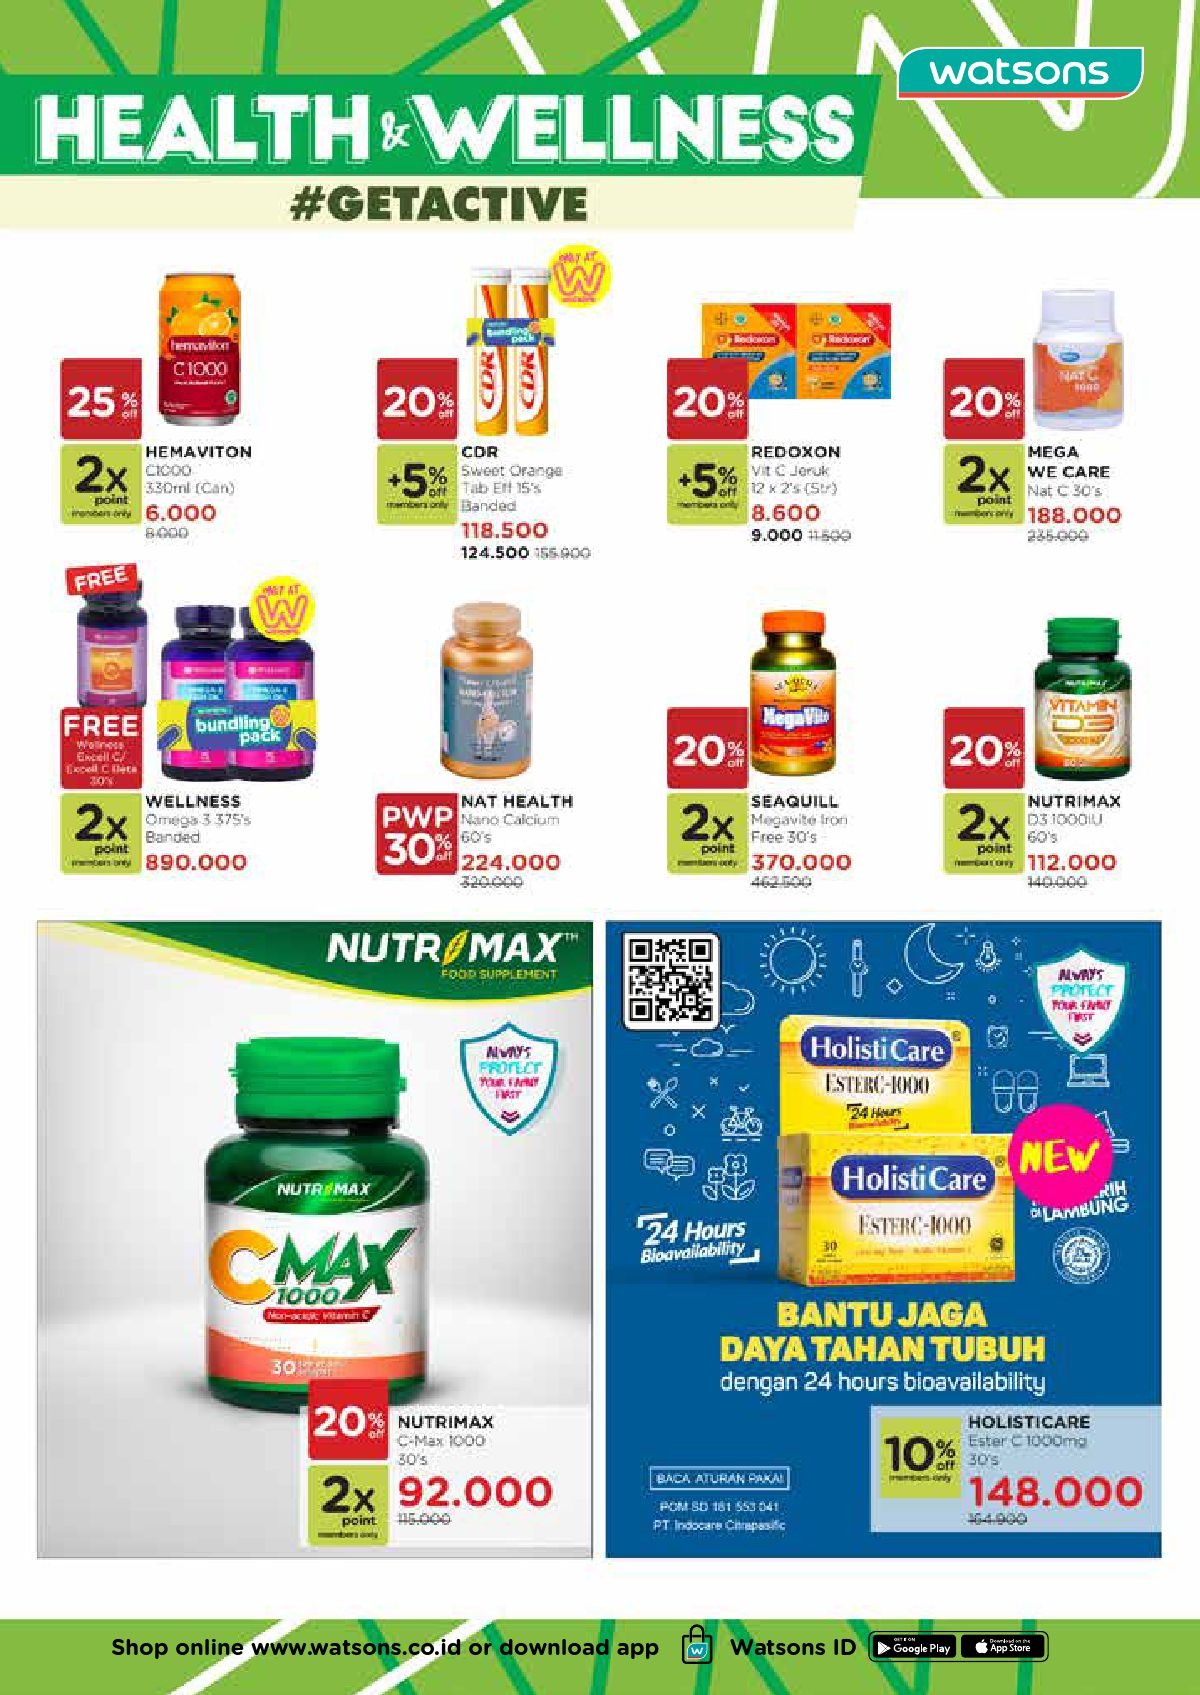 Katalog Belanja Watsons Terbaru - BEAUTY IN LOVE Discount Up to 50% on your favorite products